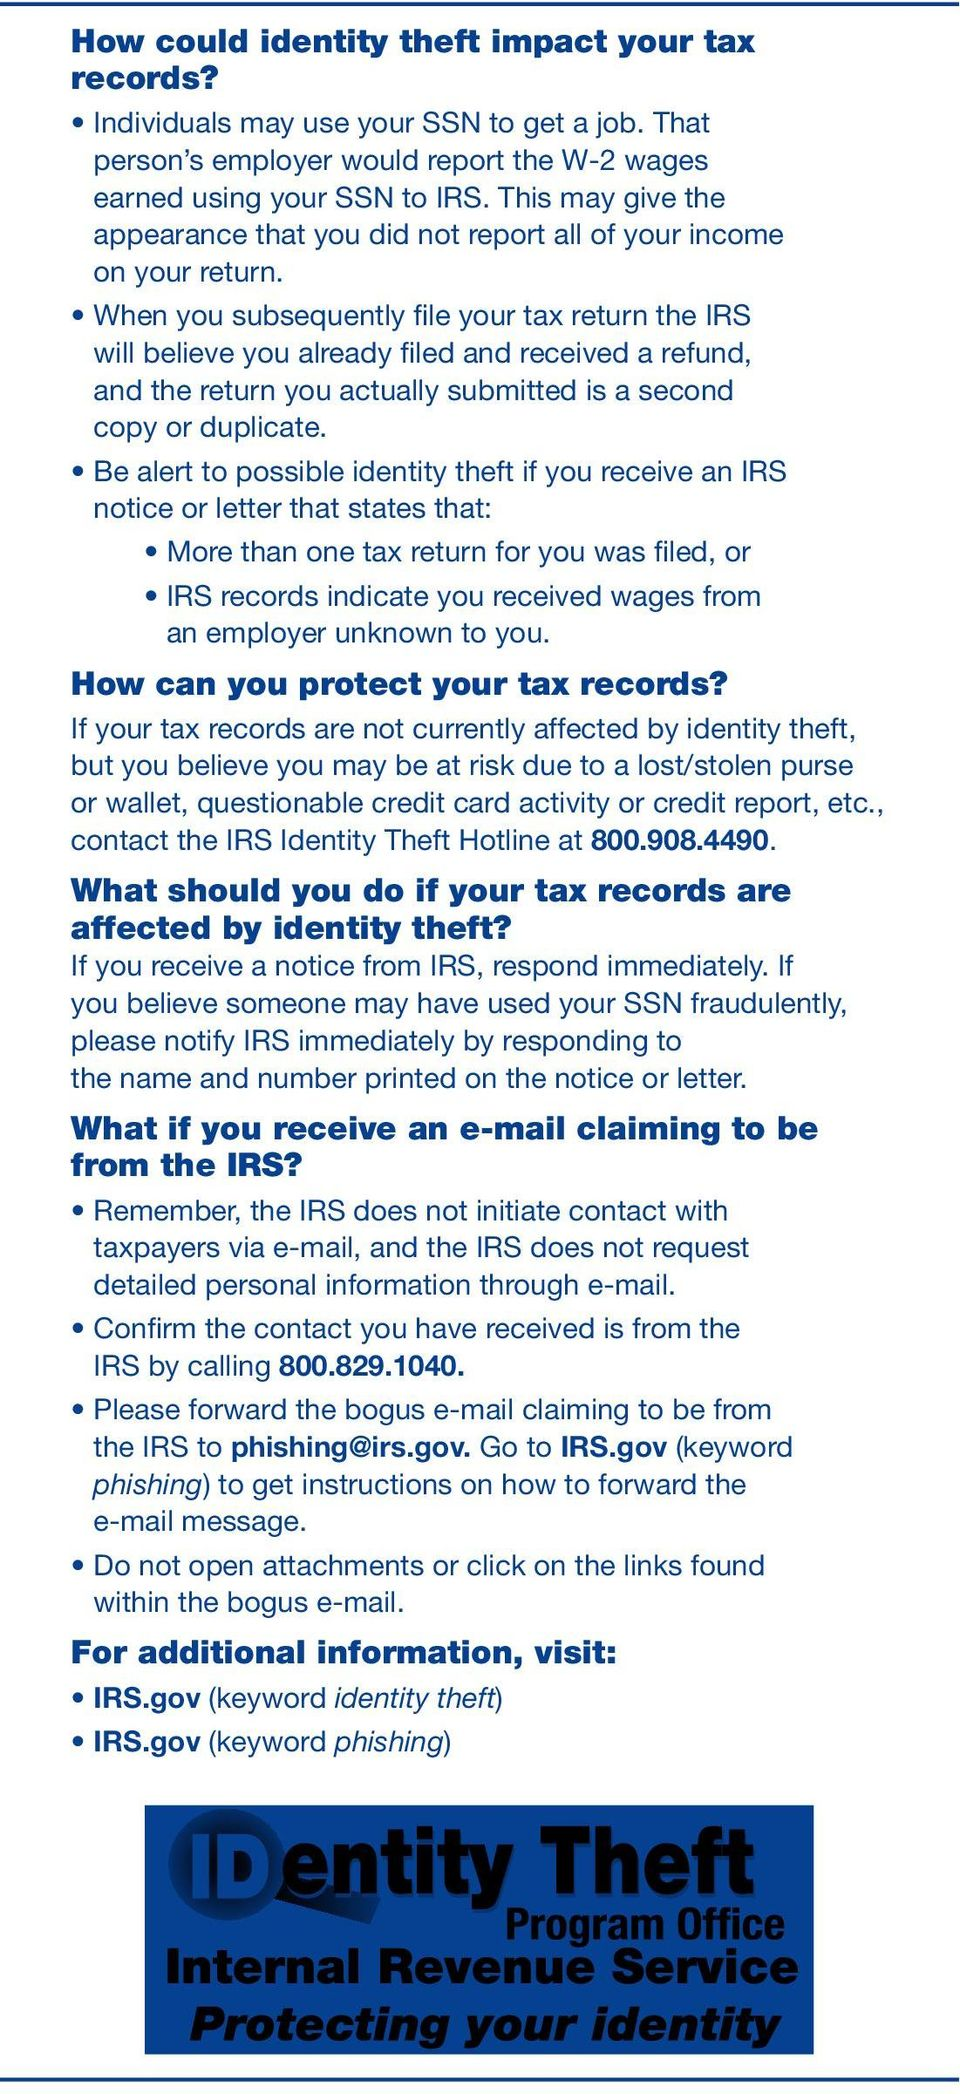 How can you protect your tax records?